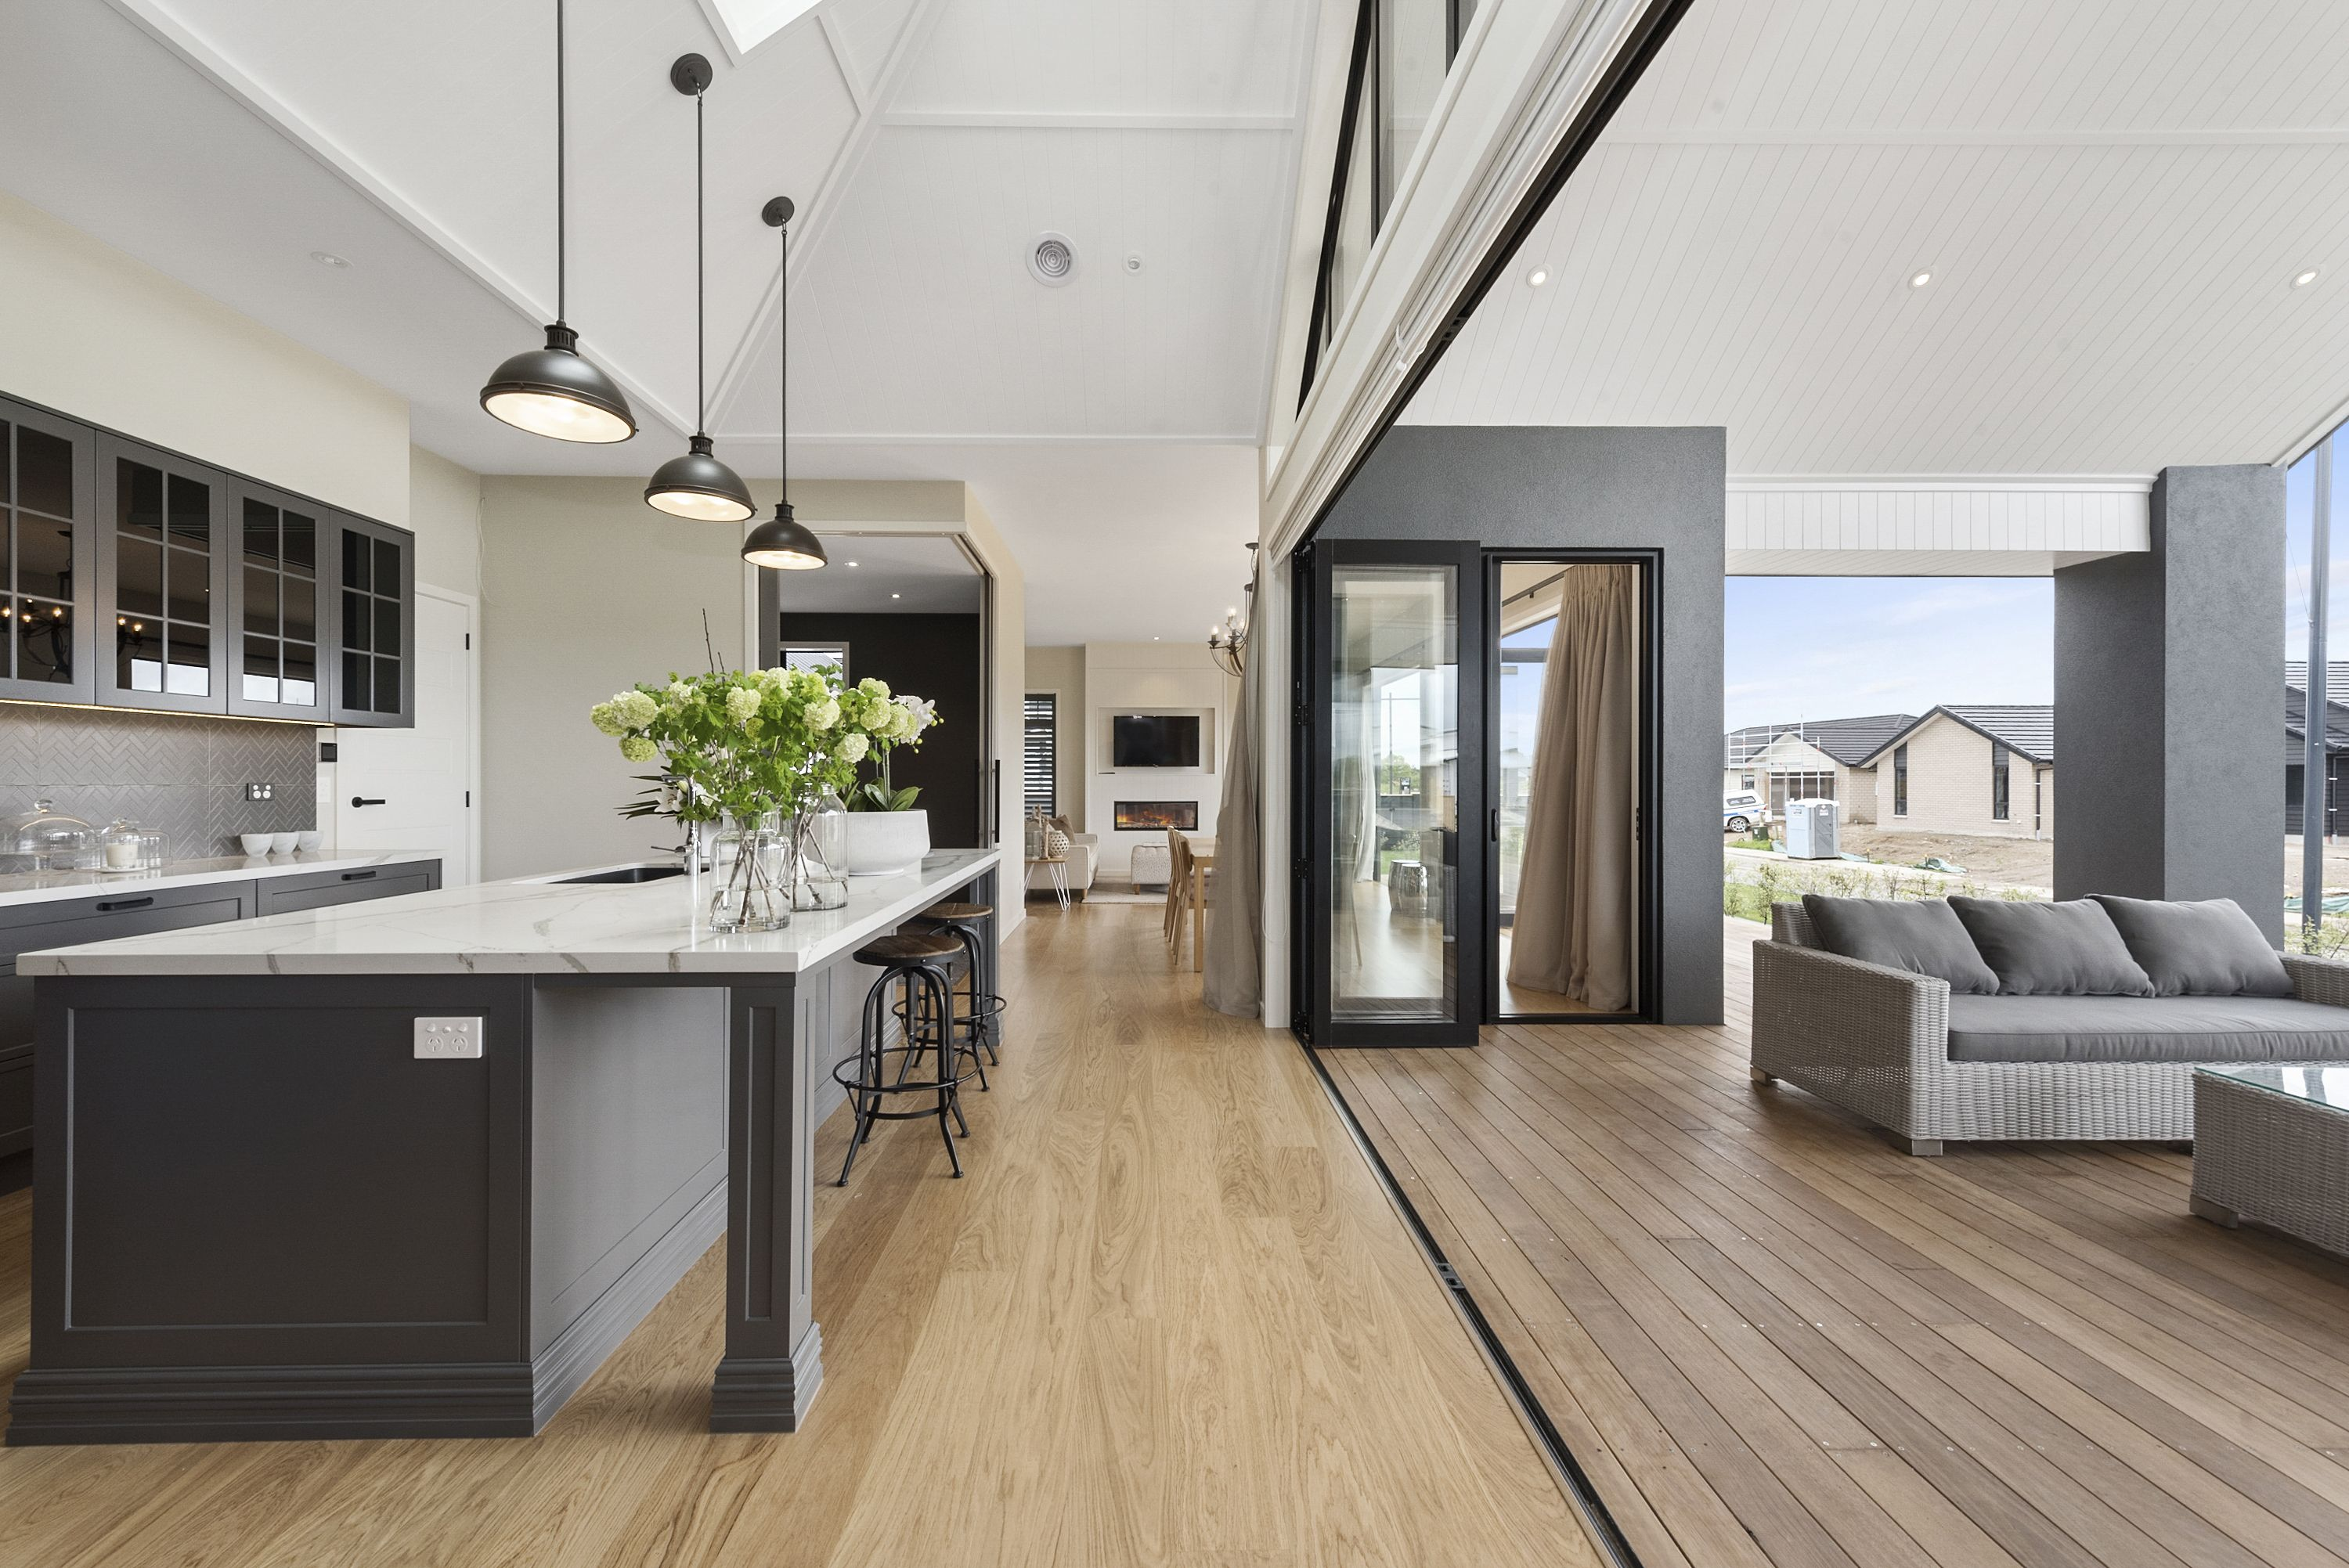 laminate simple floors gallery design important flooring but seven home about to dream remember svauh things